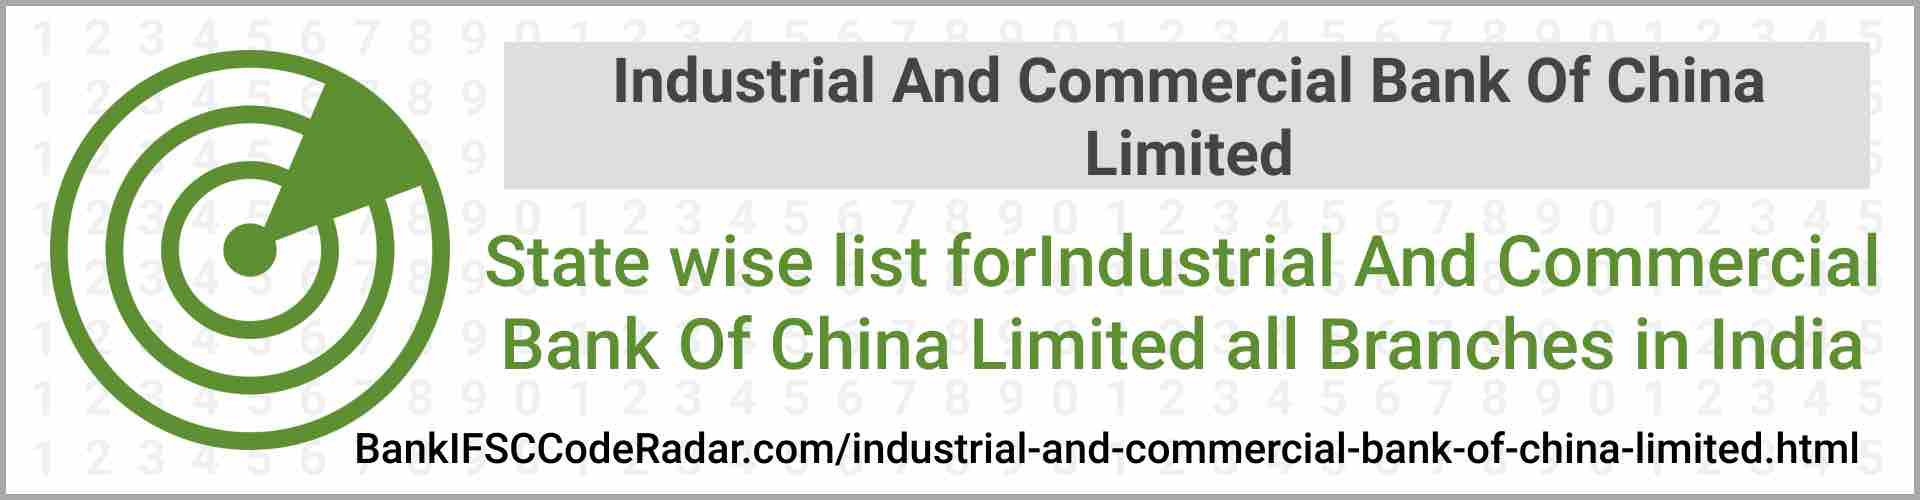 Industrial And Commercial Bank Of China Limited All Branches India